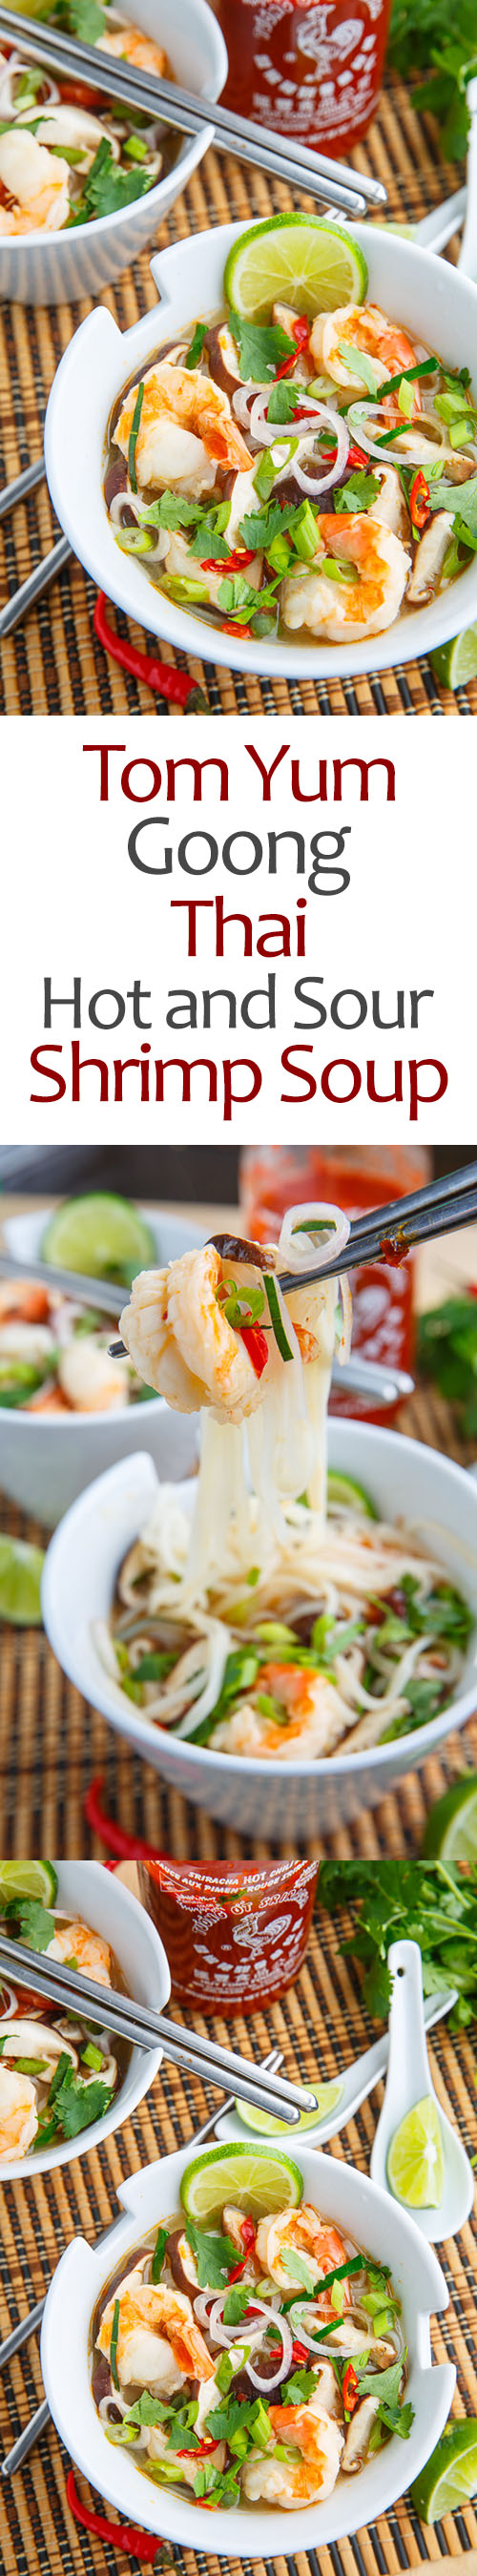 Tom Yum Goong (Thai Hot and Sour Shrimp Soup)